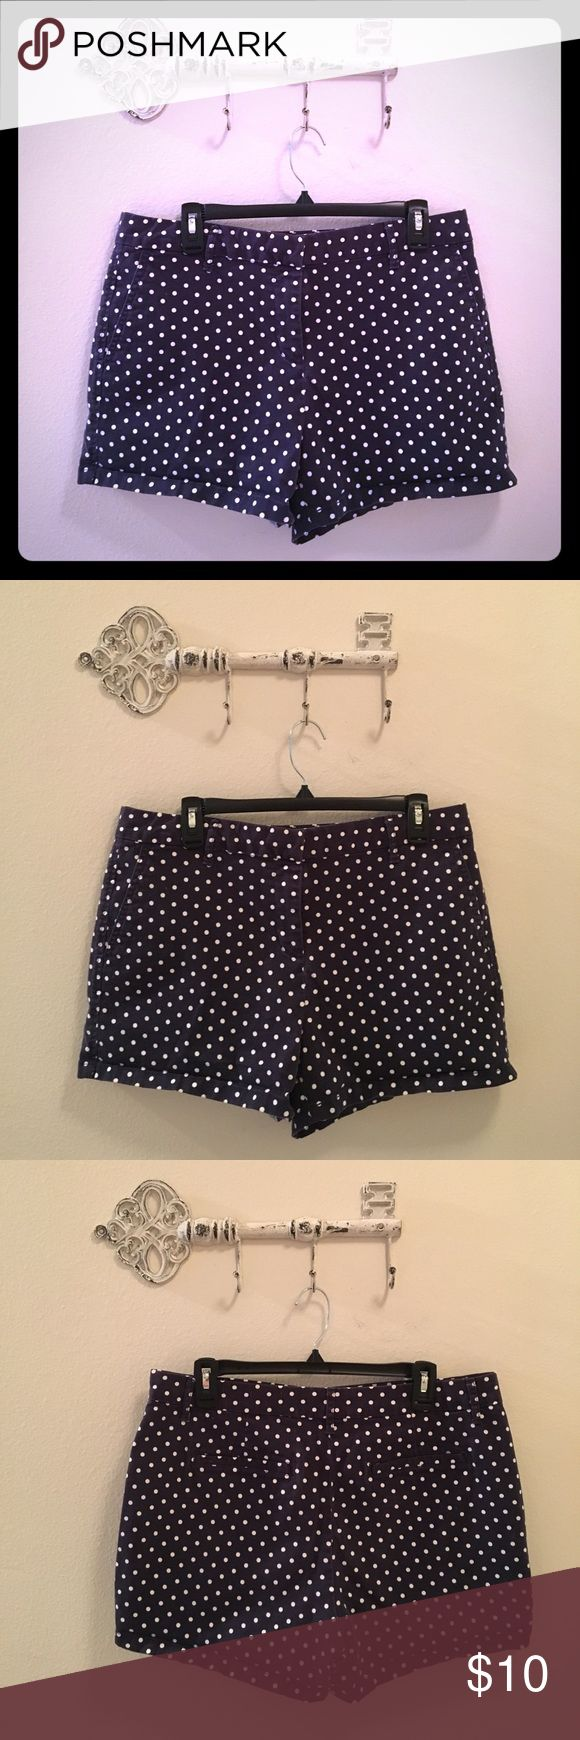 ELLE Navy/White Polka Dot Shorts Women's Size 10 ELLE Navy/White Polka Dot Shorts Women's Size 10. Stretchy! Two pockets in front and slit pockets behind. Good condition - Gently used. Elle Shorts